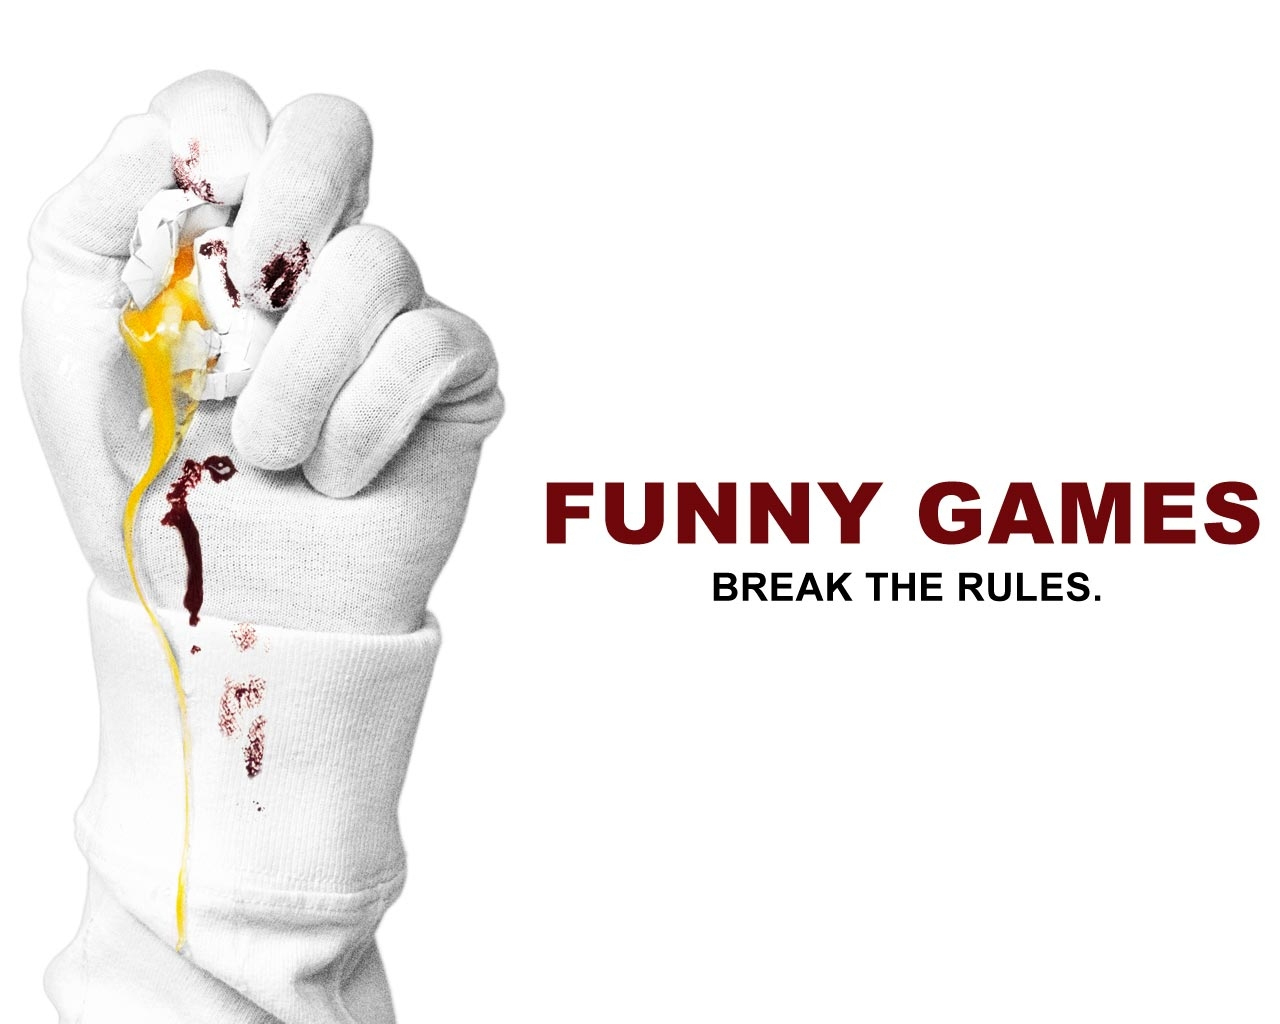 Funny Games US - Horror Movies Wallpaper (9975573) - Fanpop Funny Games Us Online